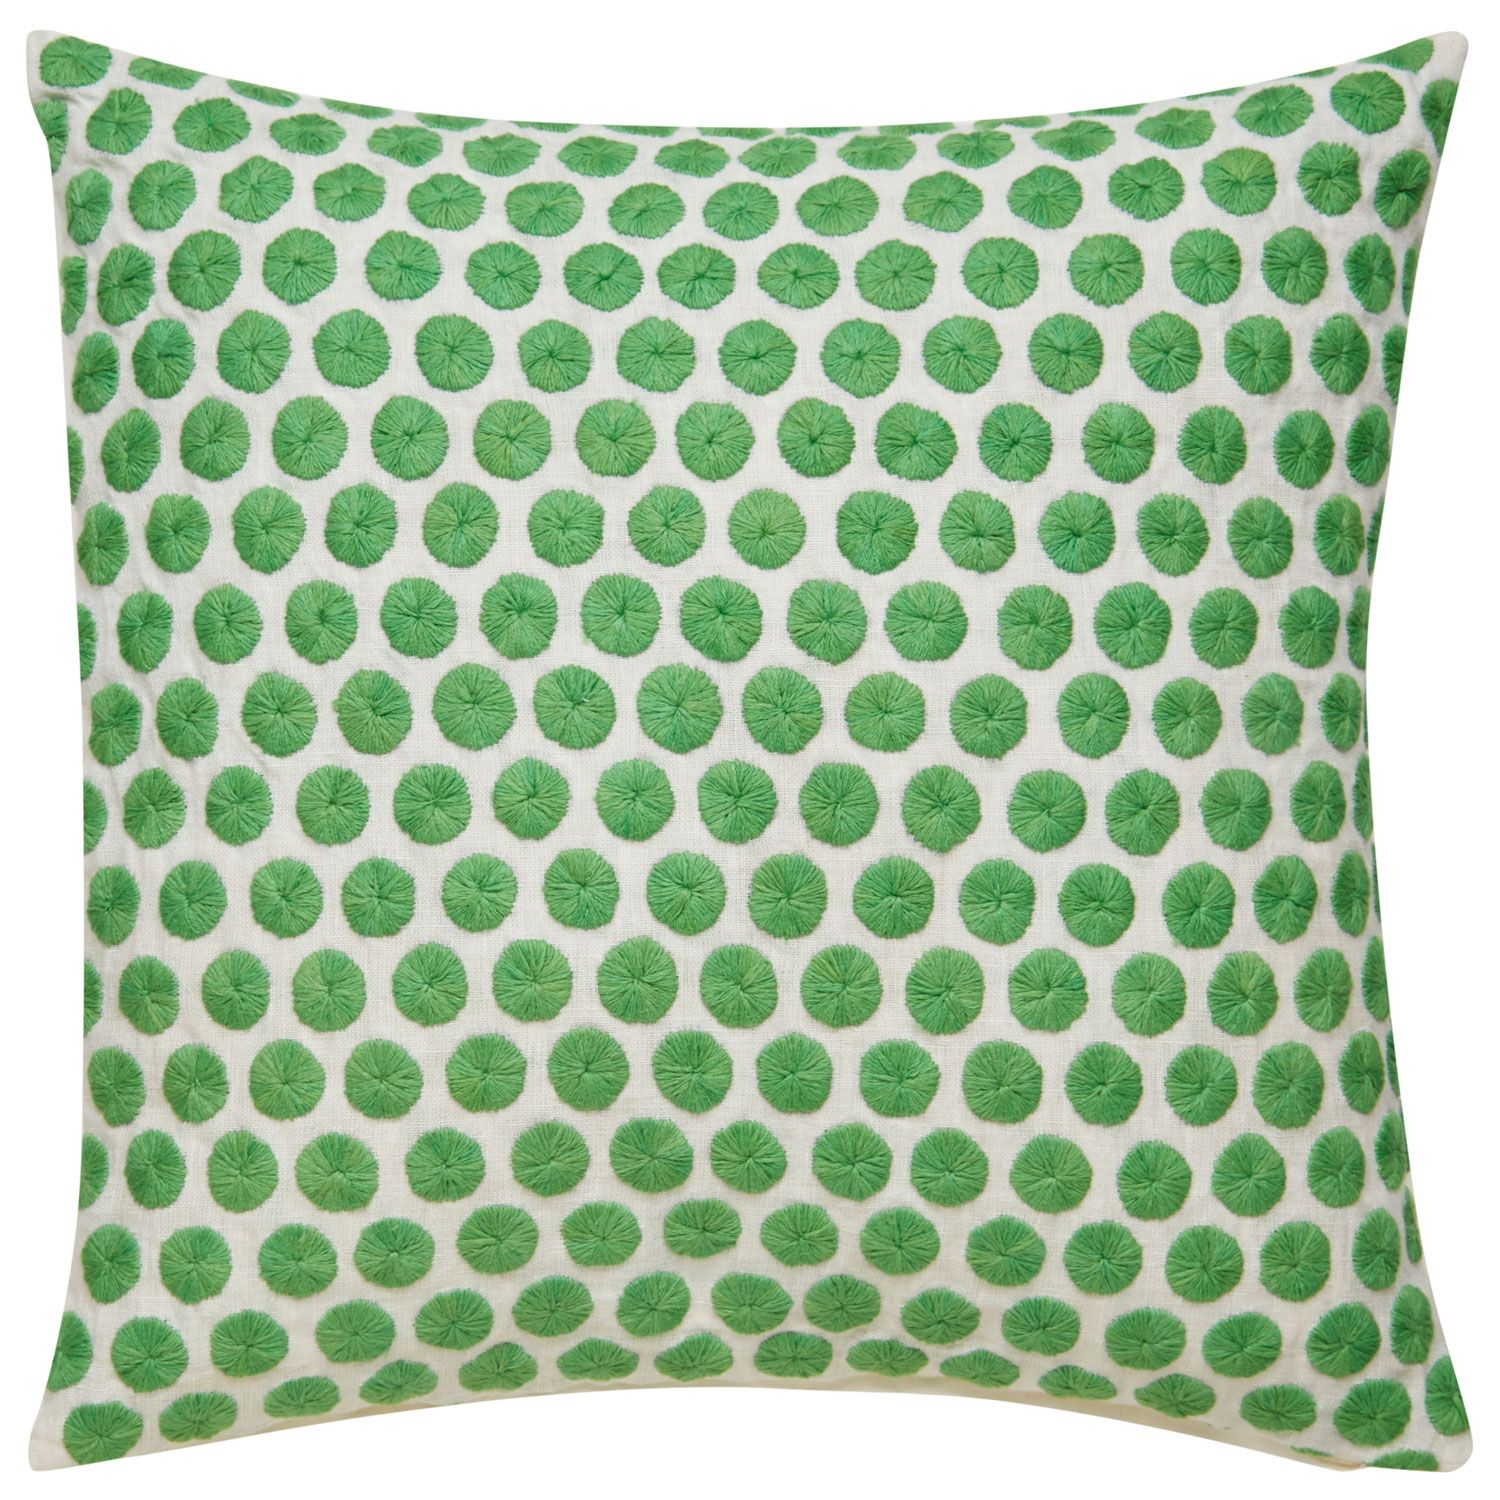 Kate Spade New York By Jaipur Yorkville Embroidered Dot Picnic Green Throw Pillow Green Throw Pillows Dot Pillow Green Accent Pillow